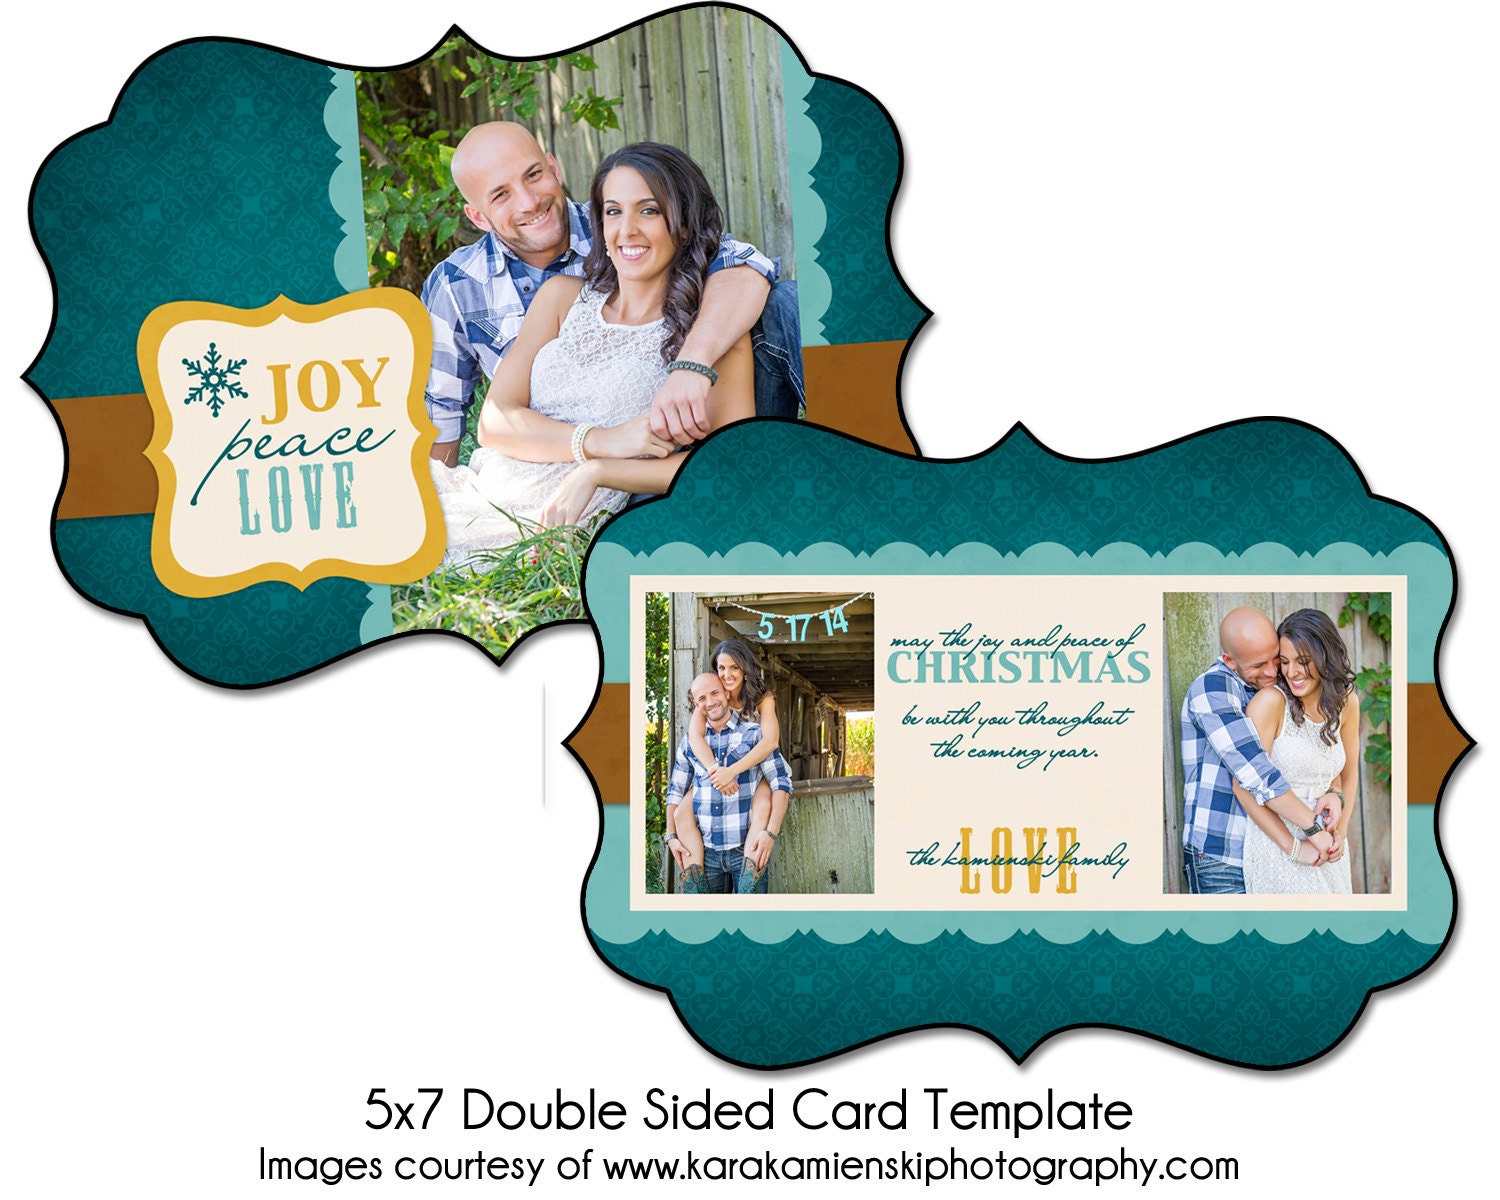 christmas card template joyous love 5x7 double sided card. Black Bedroom Furniture Sets. Home Design Ideas